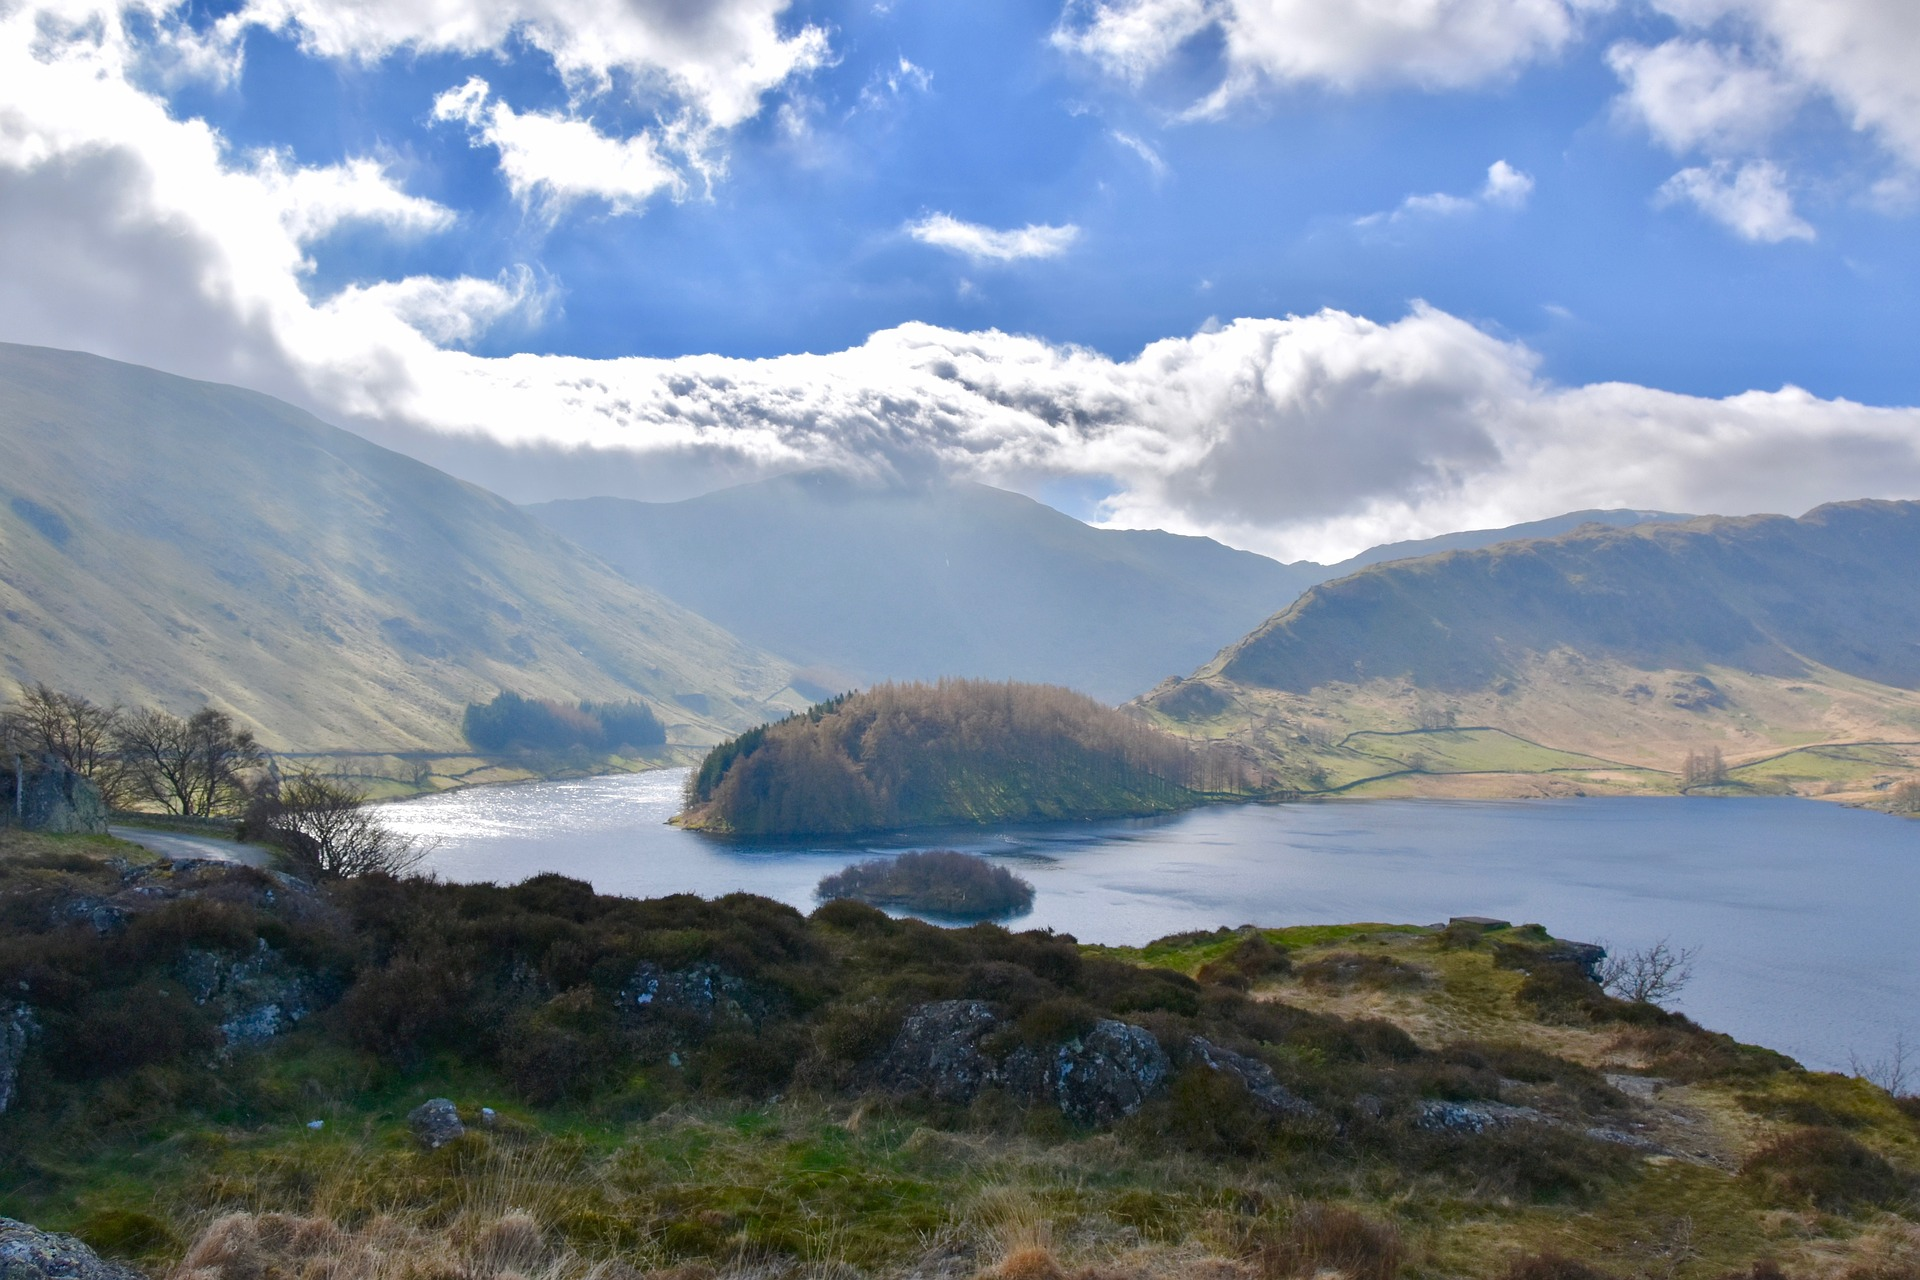 Haweswater Reservoir in the Lake District.